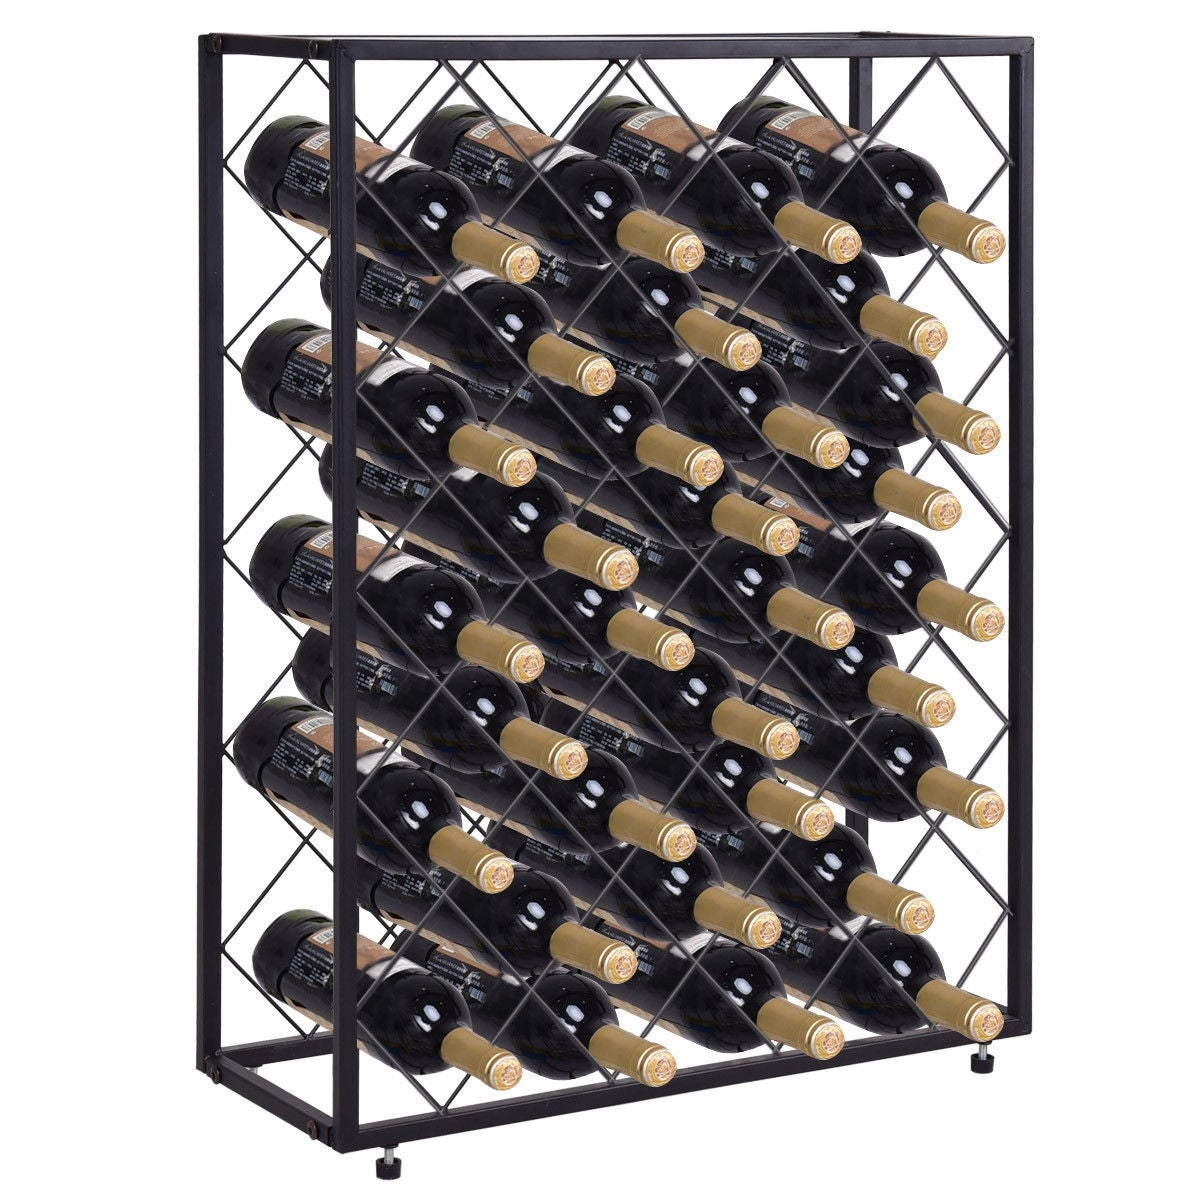 Etonnant Shop Gymax 32 Bottle Wine Rack Metal Storage Display Liquor Cabinet W/Glass  Table Top   Free Shipping Today   Overstock   22971627